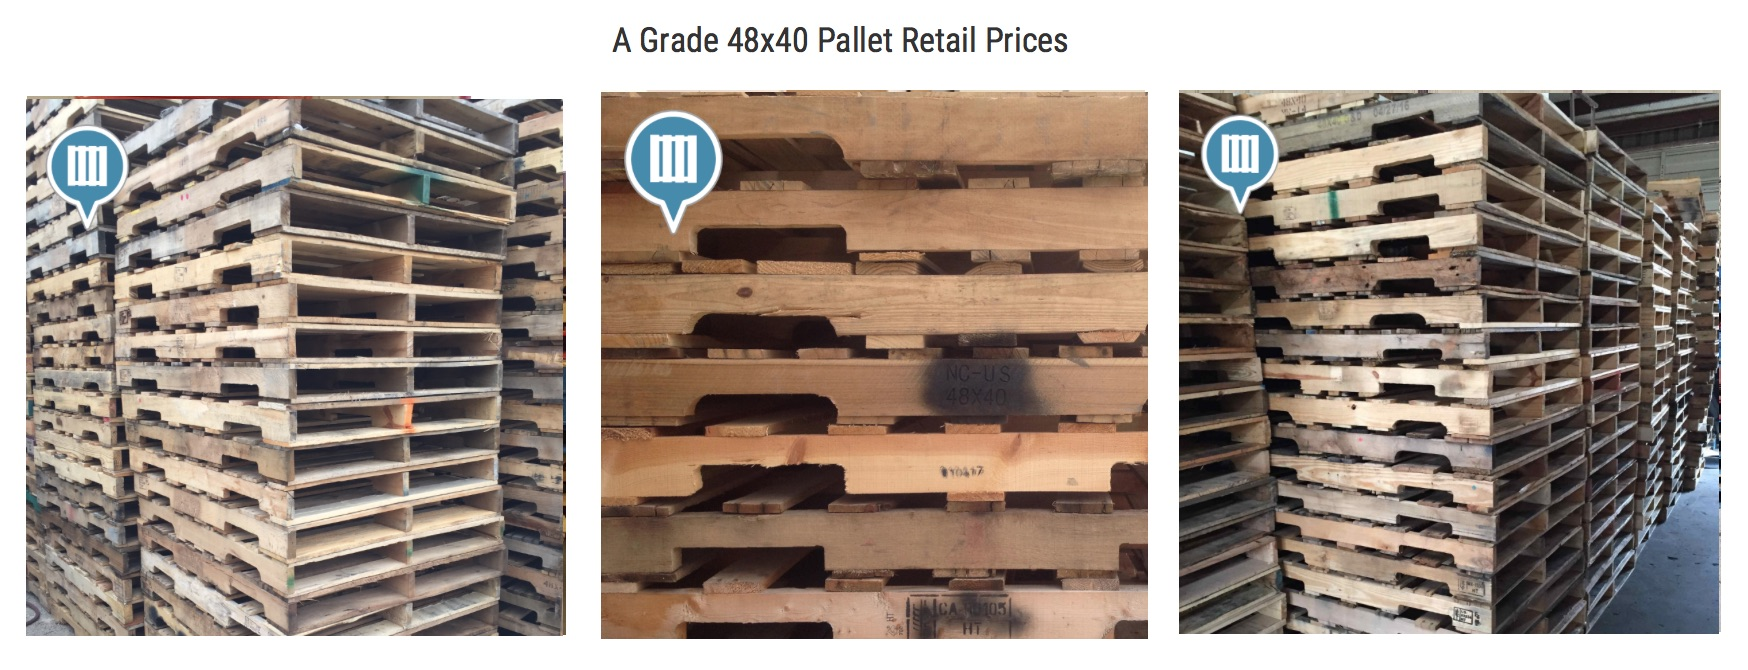 How Much Do Pallets Cost and Why